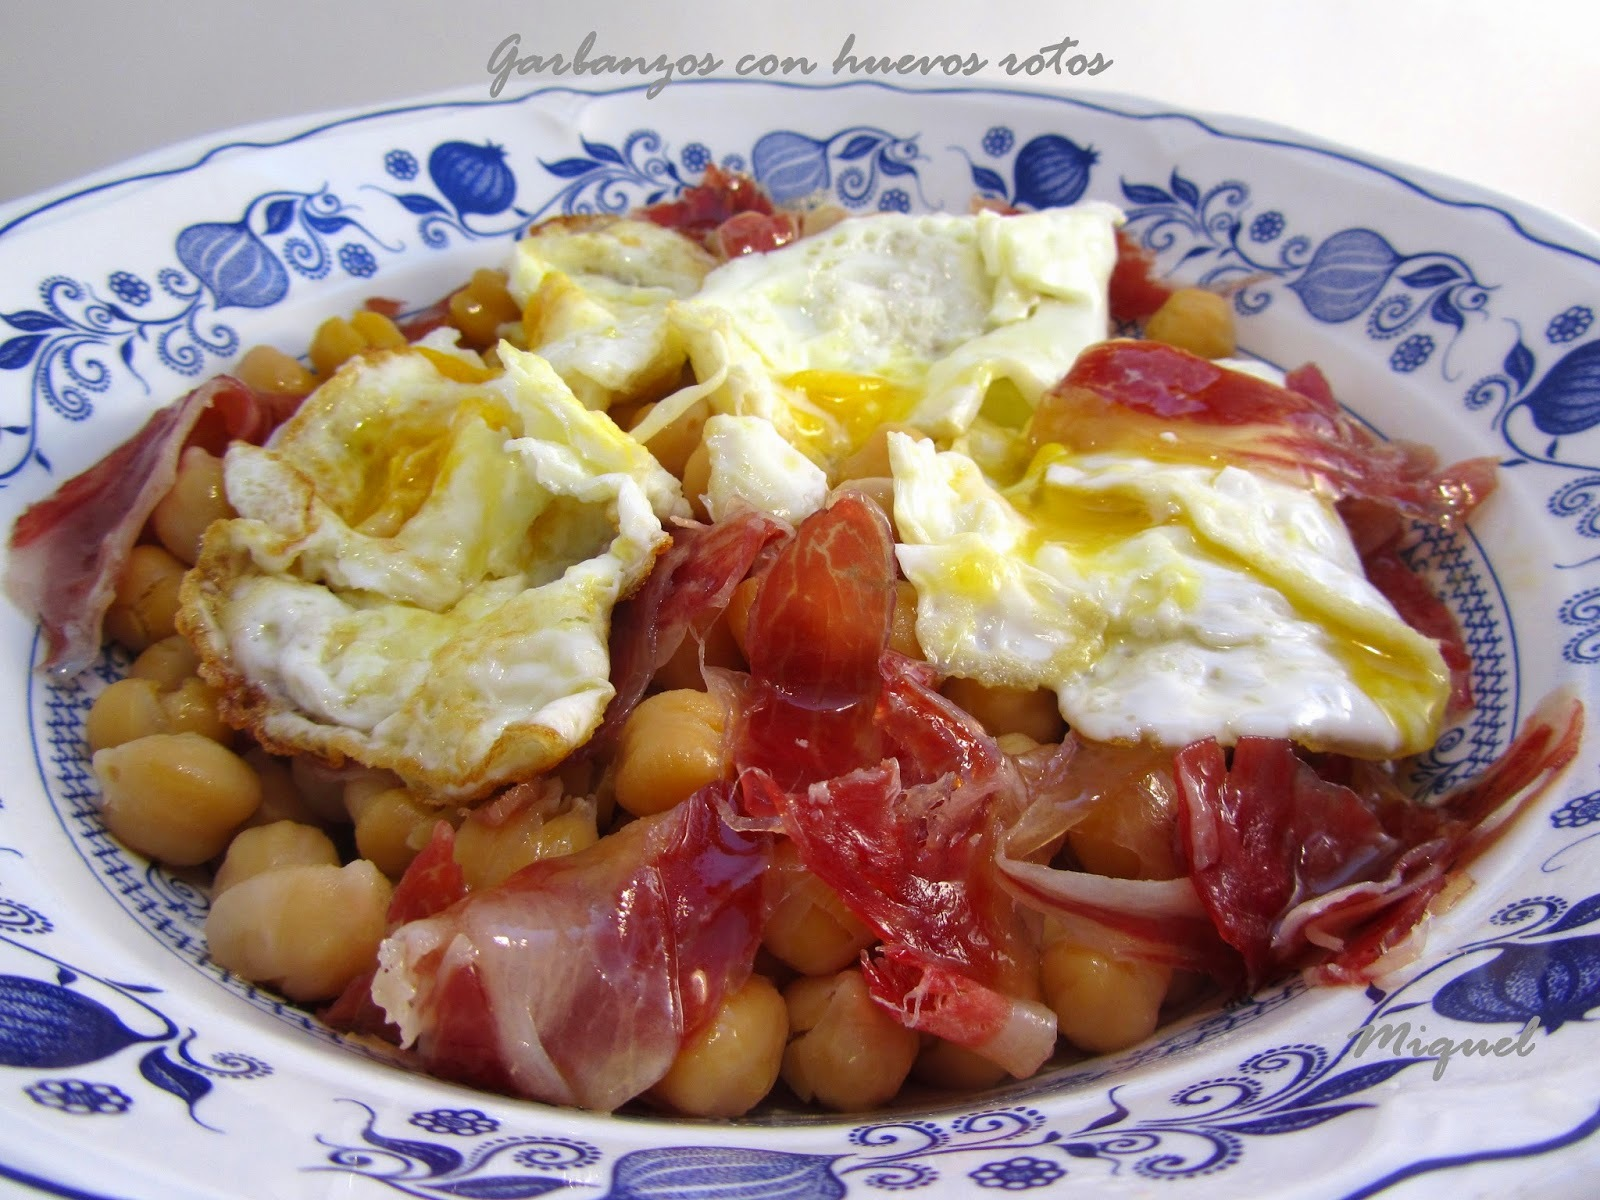 Garbanzos con huevos rotos